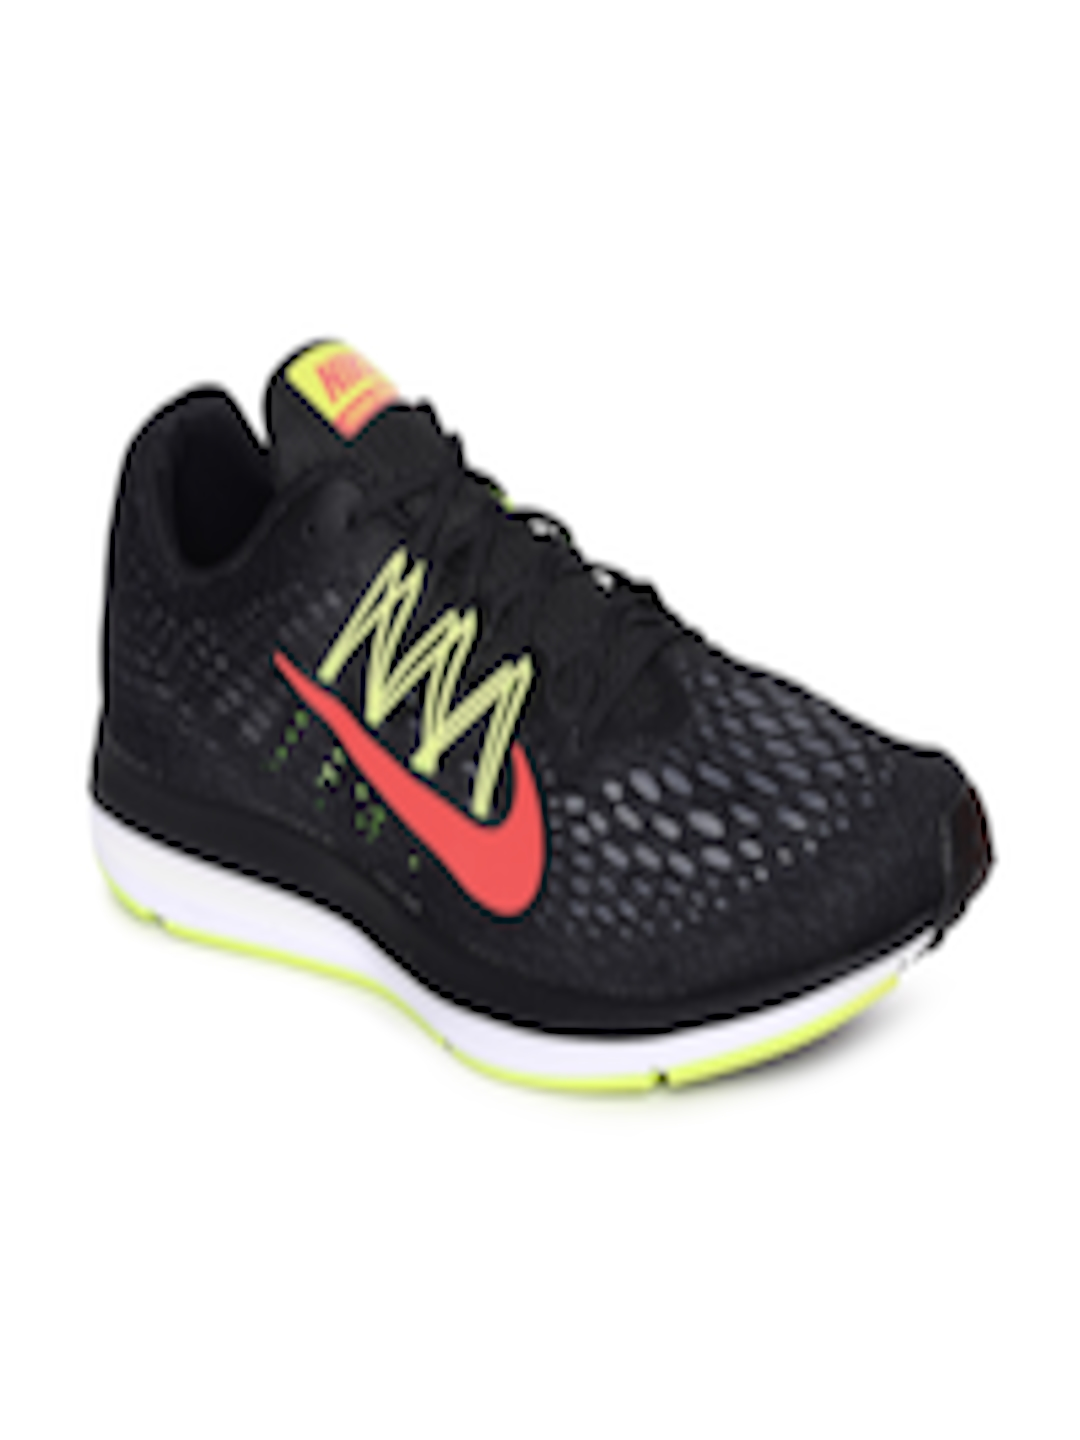 finest selection 46f5c 79995 Buy Nike Men Black Air Zoom Winflo 5 Running Shoes - - Footwear for Men